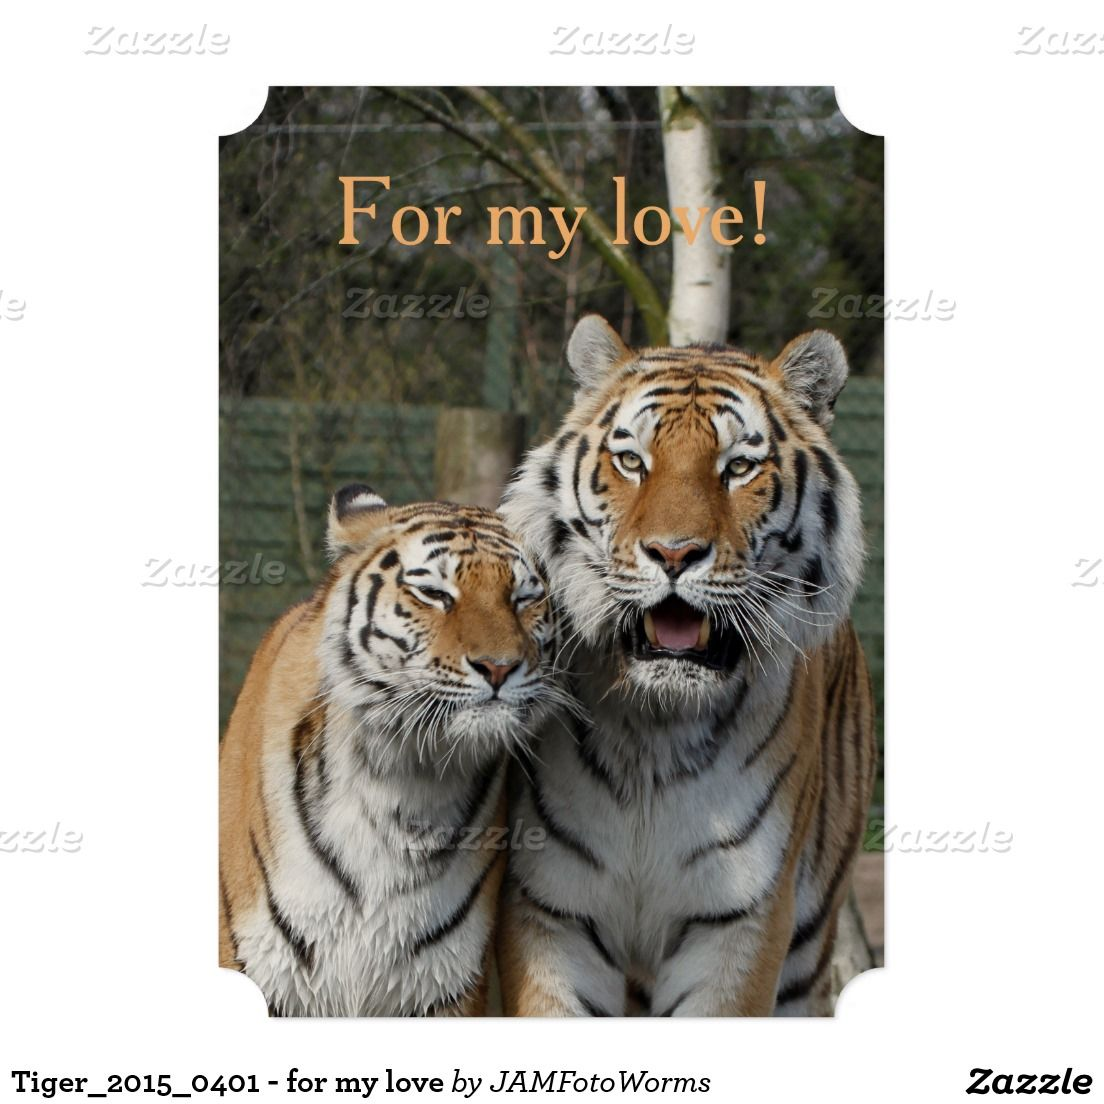 Tiger_2015_0401 - for my love